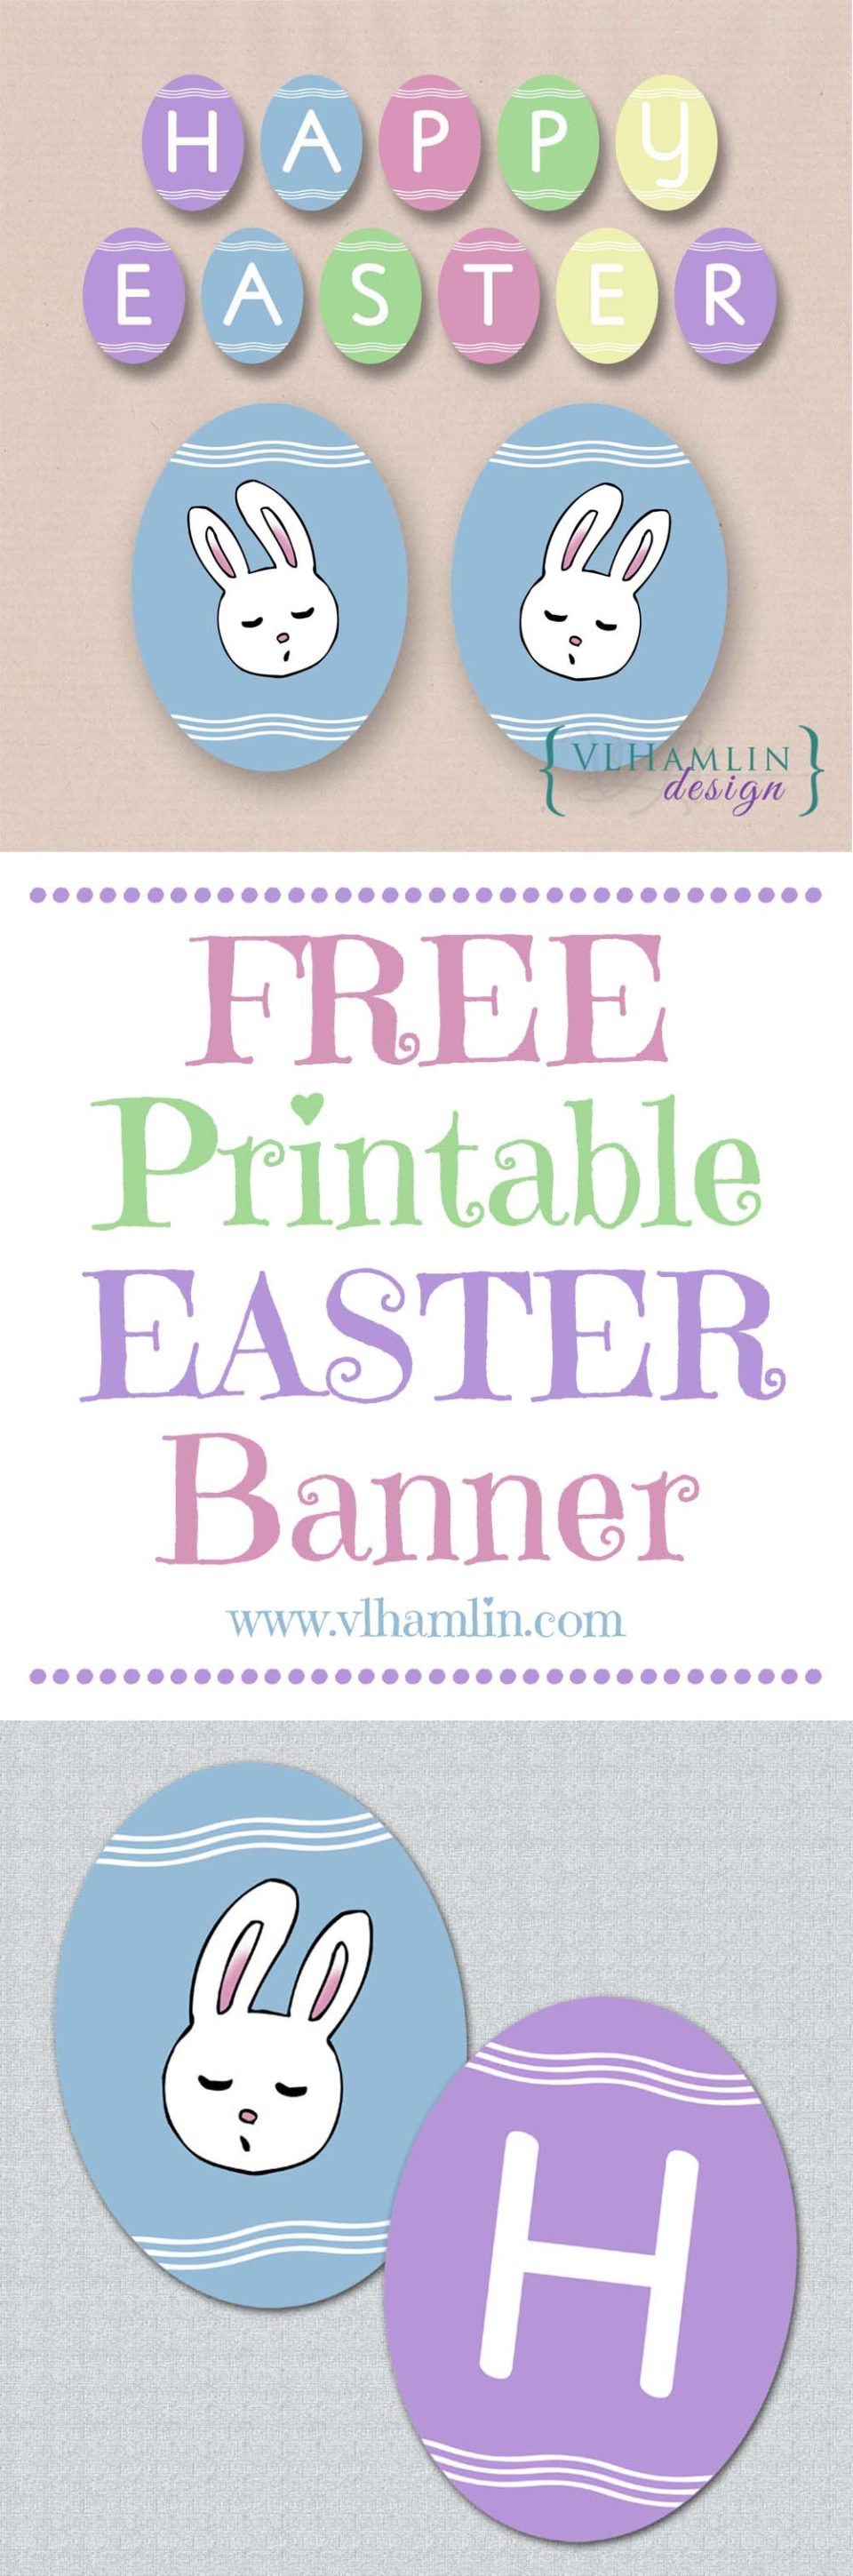 Free Printable Easter Egg Banner